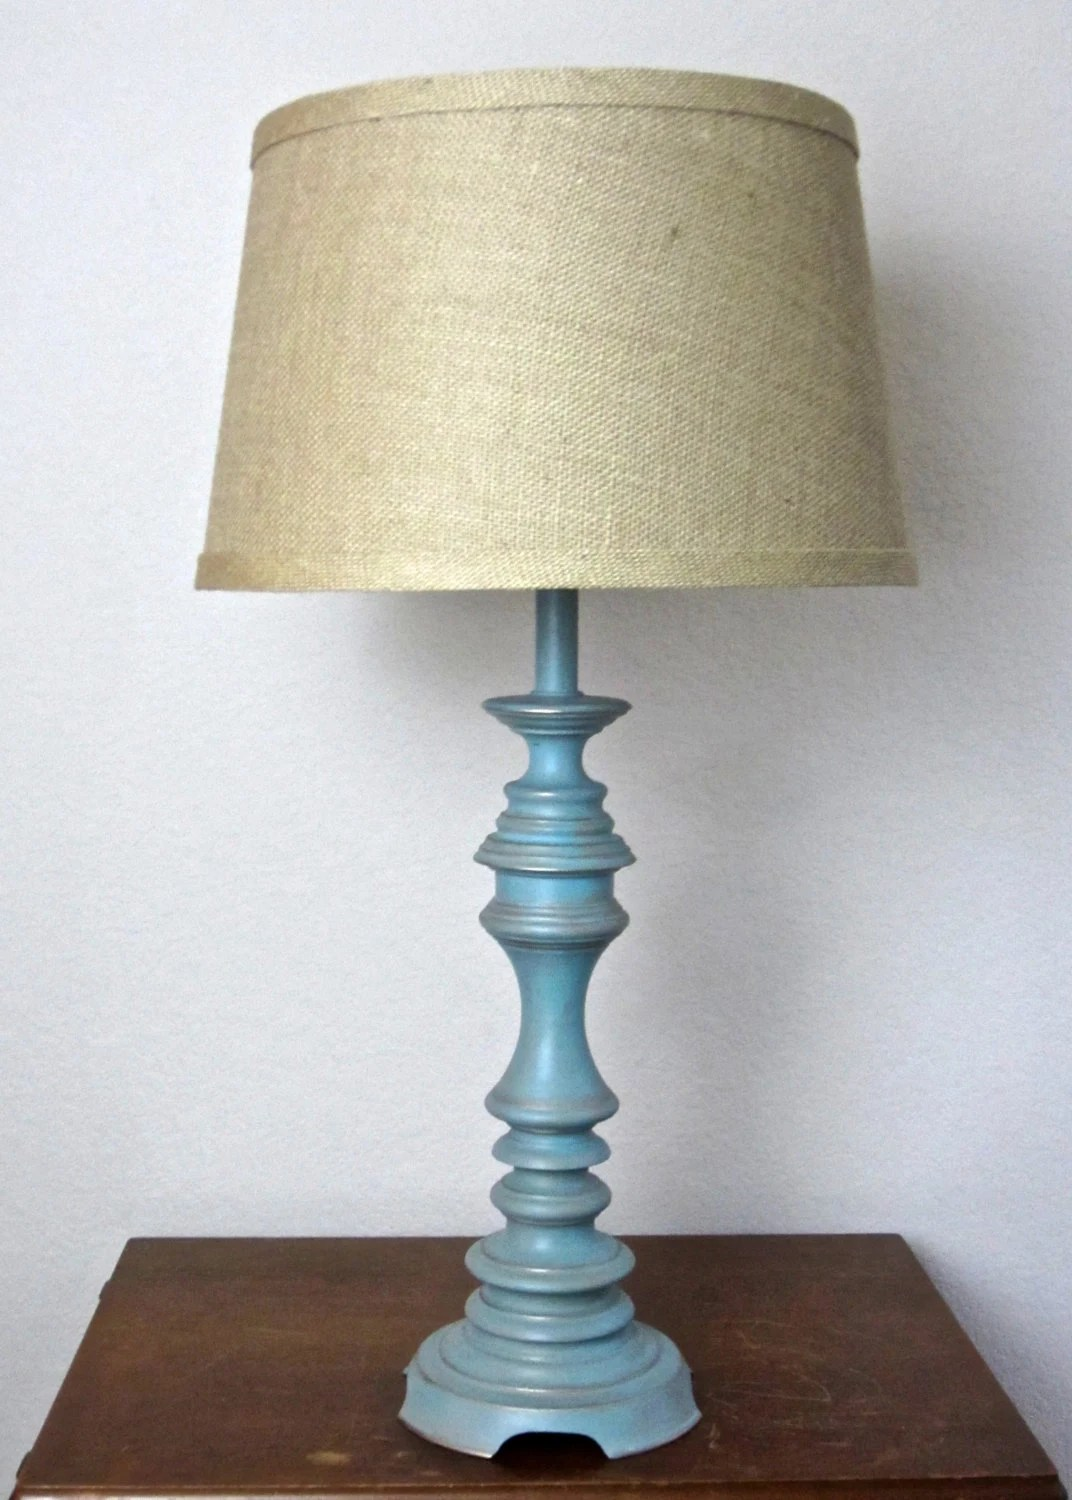 TABLE LAMP Cottage Chic Distressed Turquoise Gold Linen